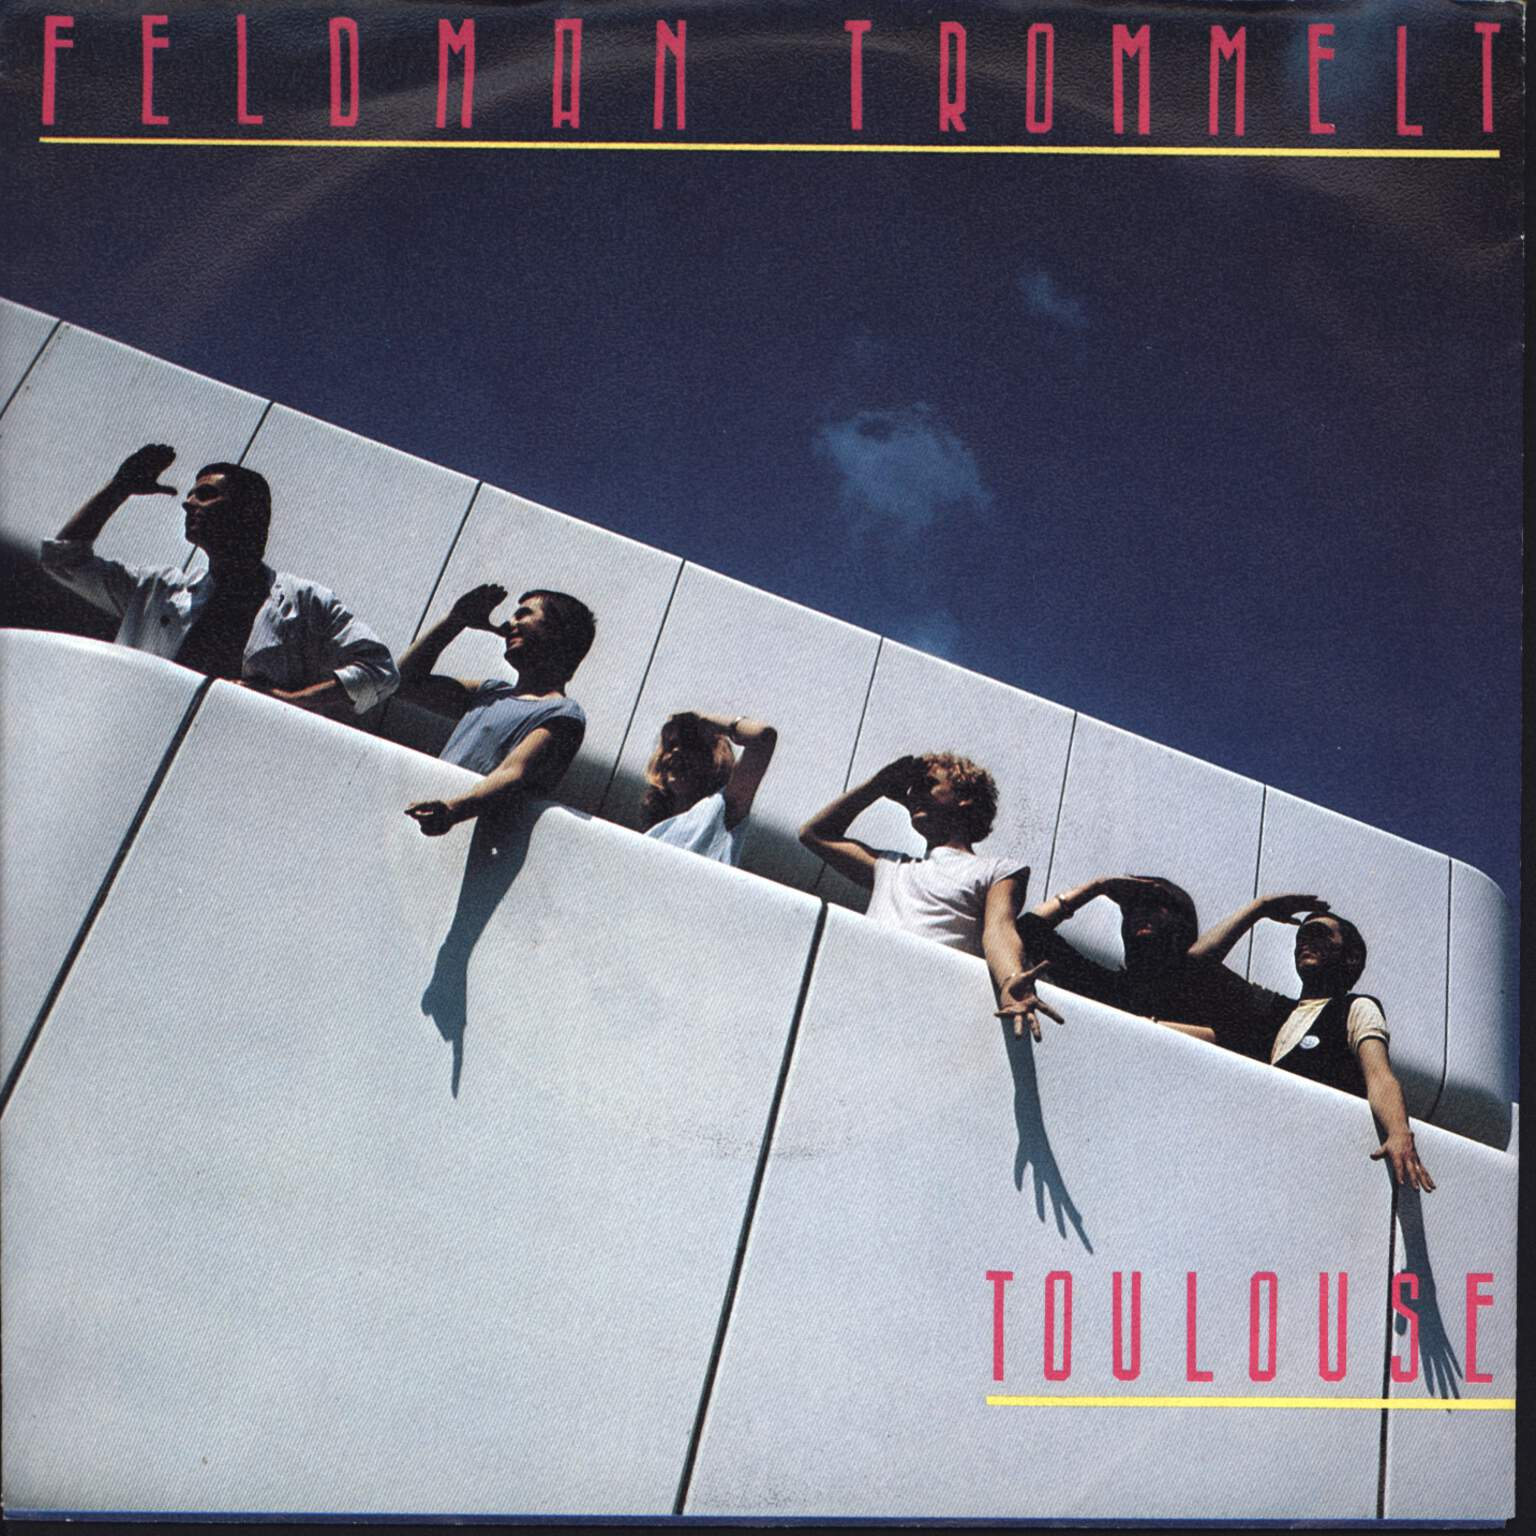 "Feltman Trommelt: Toulouse, 7"" Single (Vinyl)"